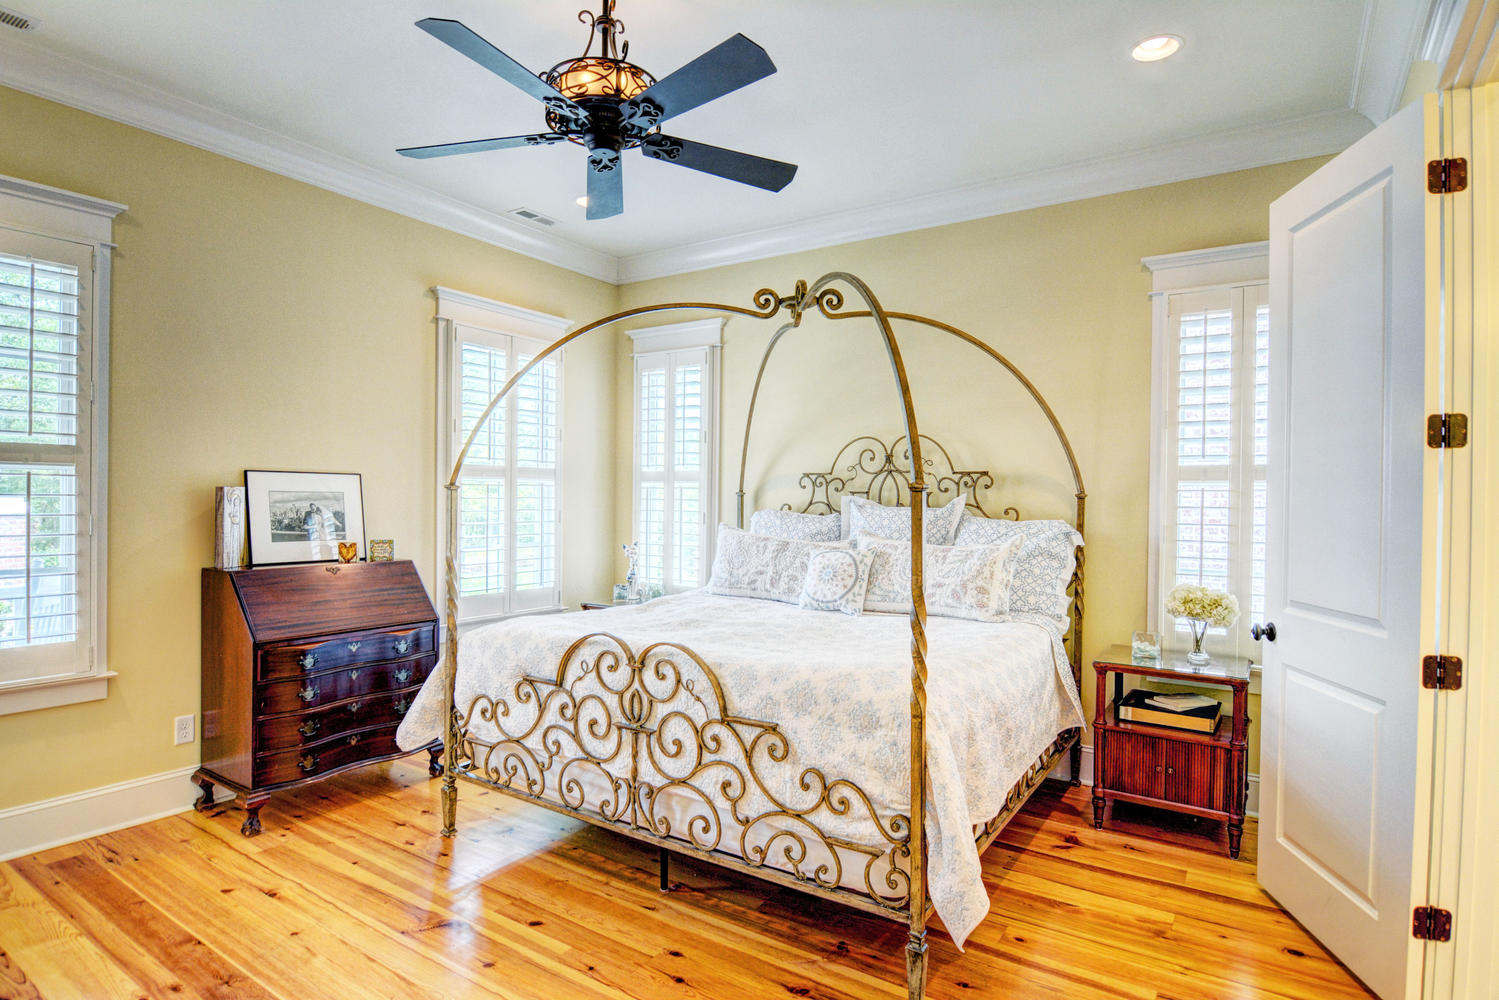 733 Susquehanna Ln Wilmington-large-012-20-Master Bedroom-1499x1000-72dpi.jpg